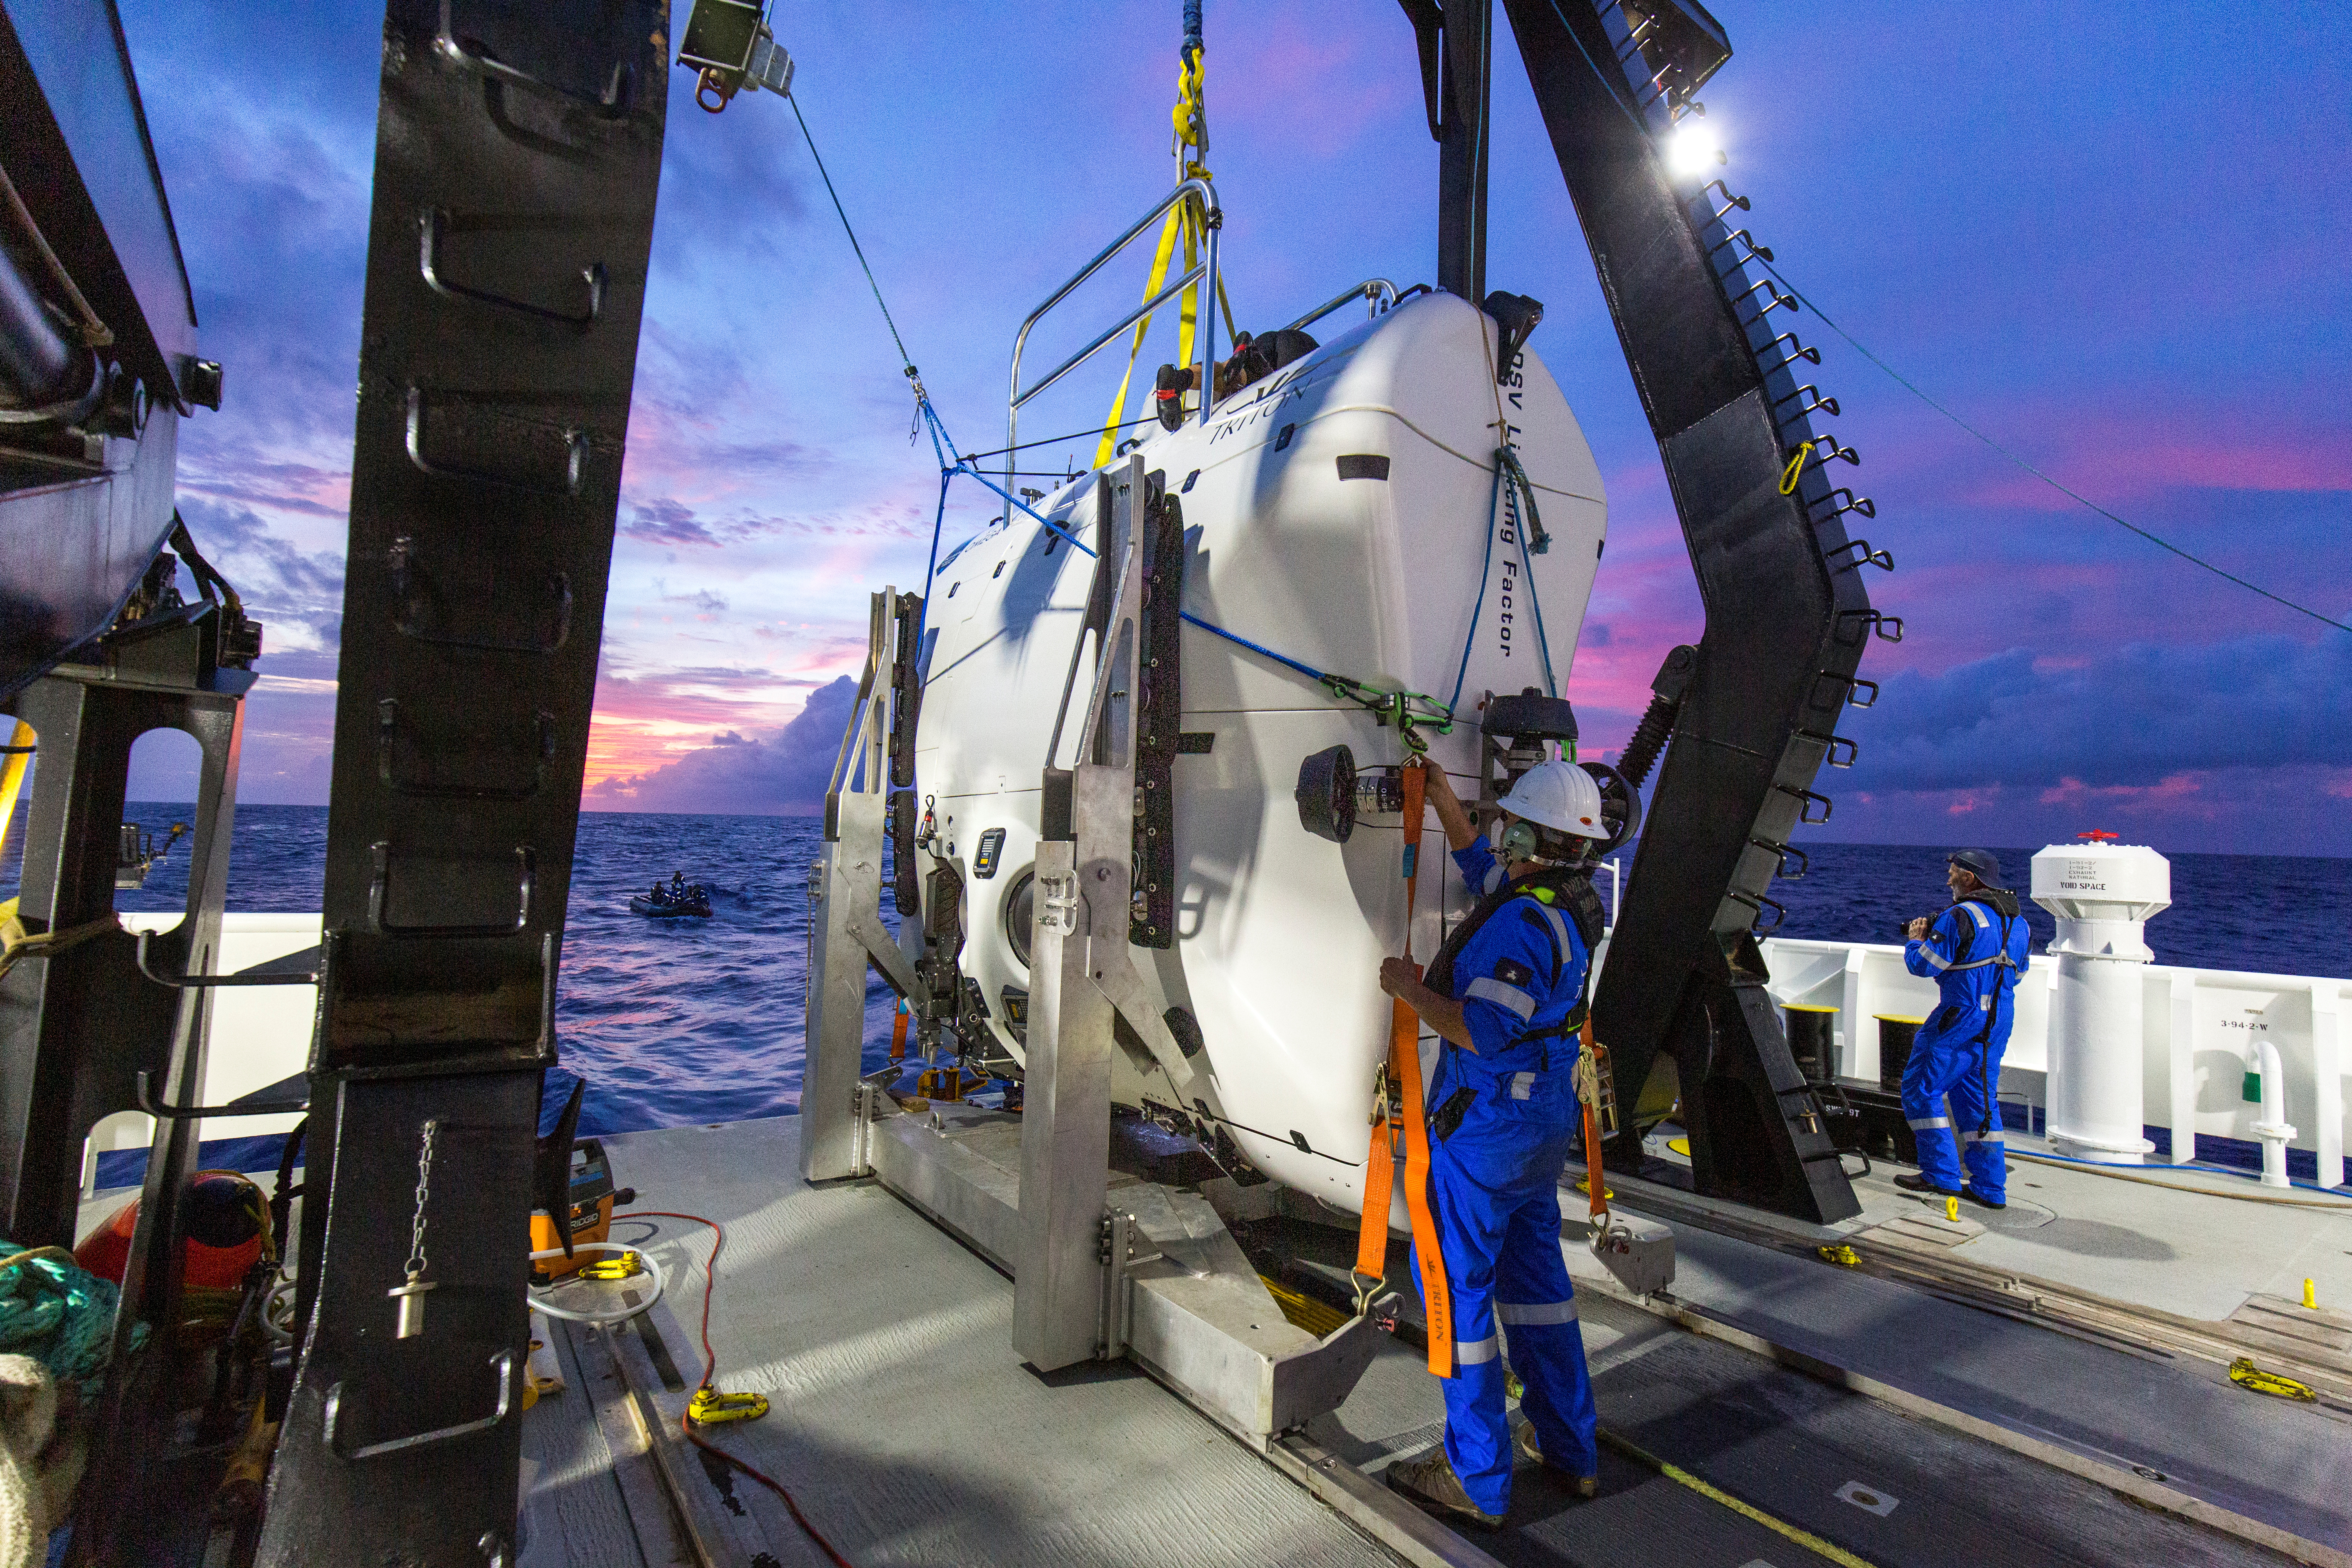 A technician checks the submarine DSV Limiting Factor aboard the research vessel DSSV Pressure Drop above the Pacific Ocean's Mariana Trench in an undated photo released by the Discovery Channel May 13, 2019. Atlantic Productions for Discovery Channel/Tamara Stubbs/Handout via REUTERS. ATTENTION EDITORS - THIS IMAGE WAS PROVIDED BY A THIRD PARTY. NO ARCHIVE. NO RESALES. MANDATORY CREDIT. - RC19891EC880